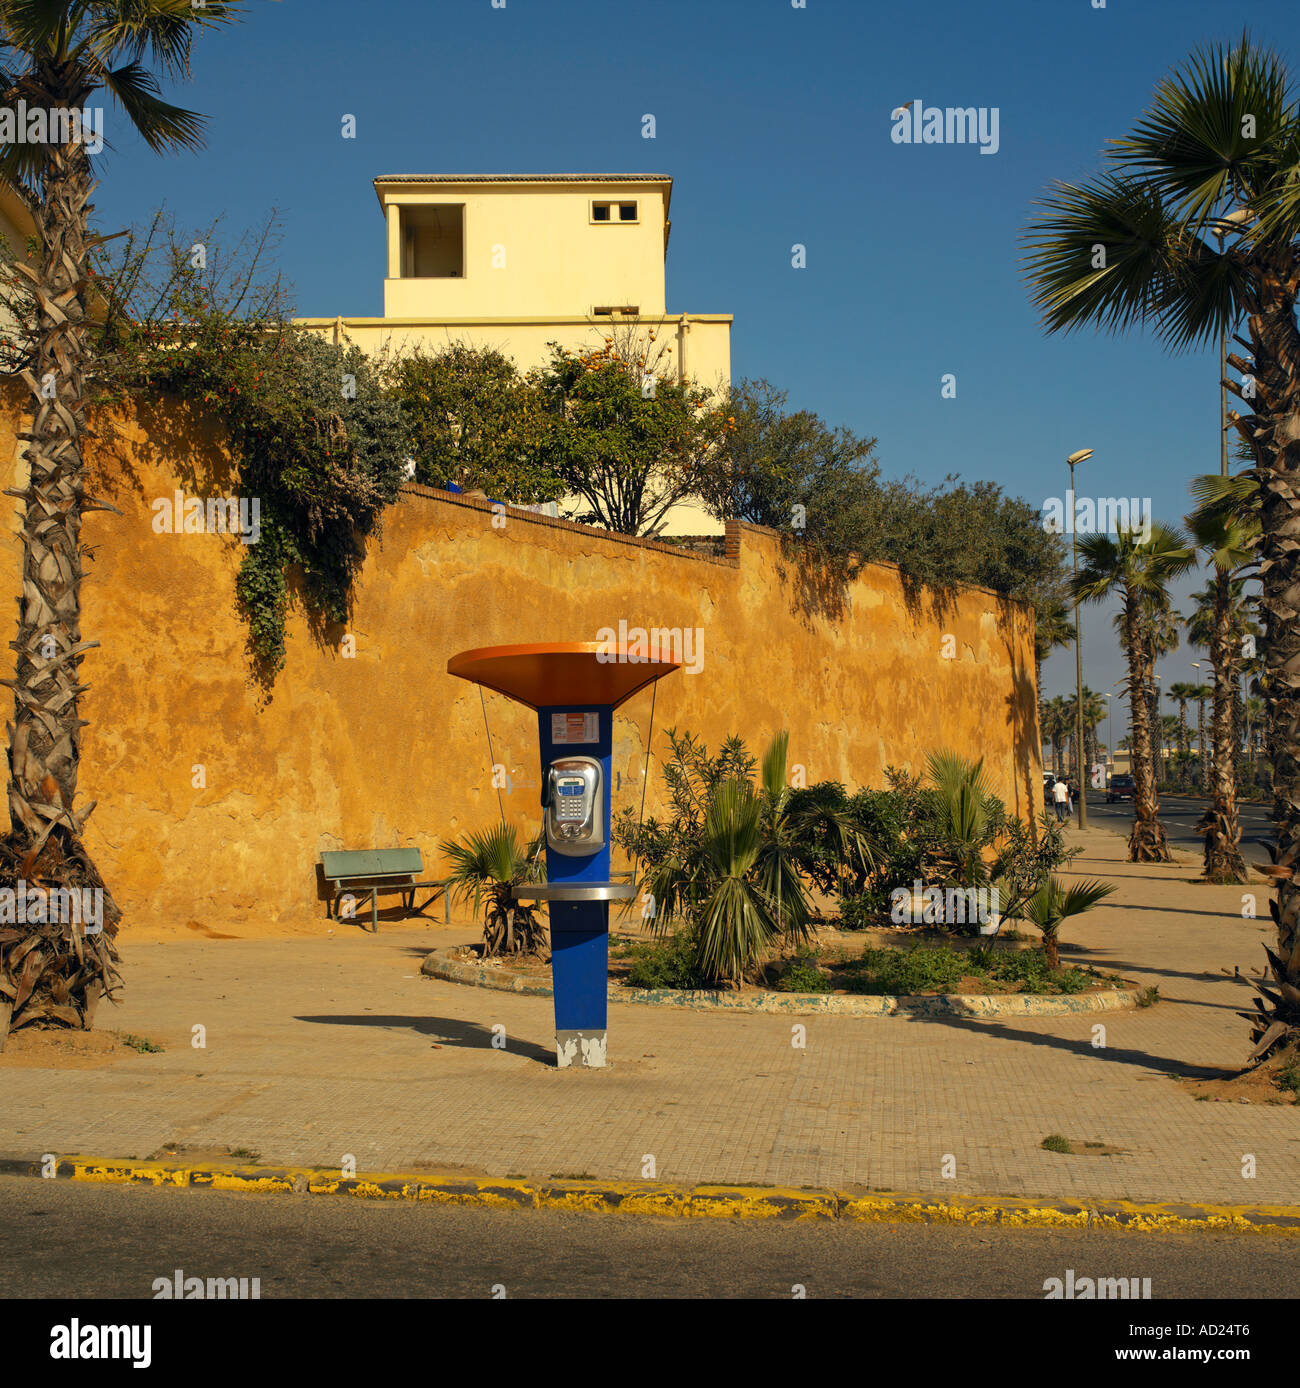 Modern telephone kiosk close to the medina - Stock Image